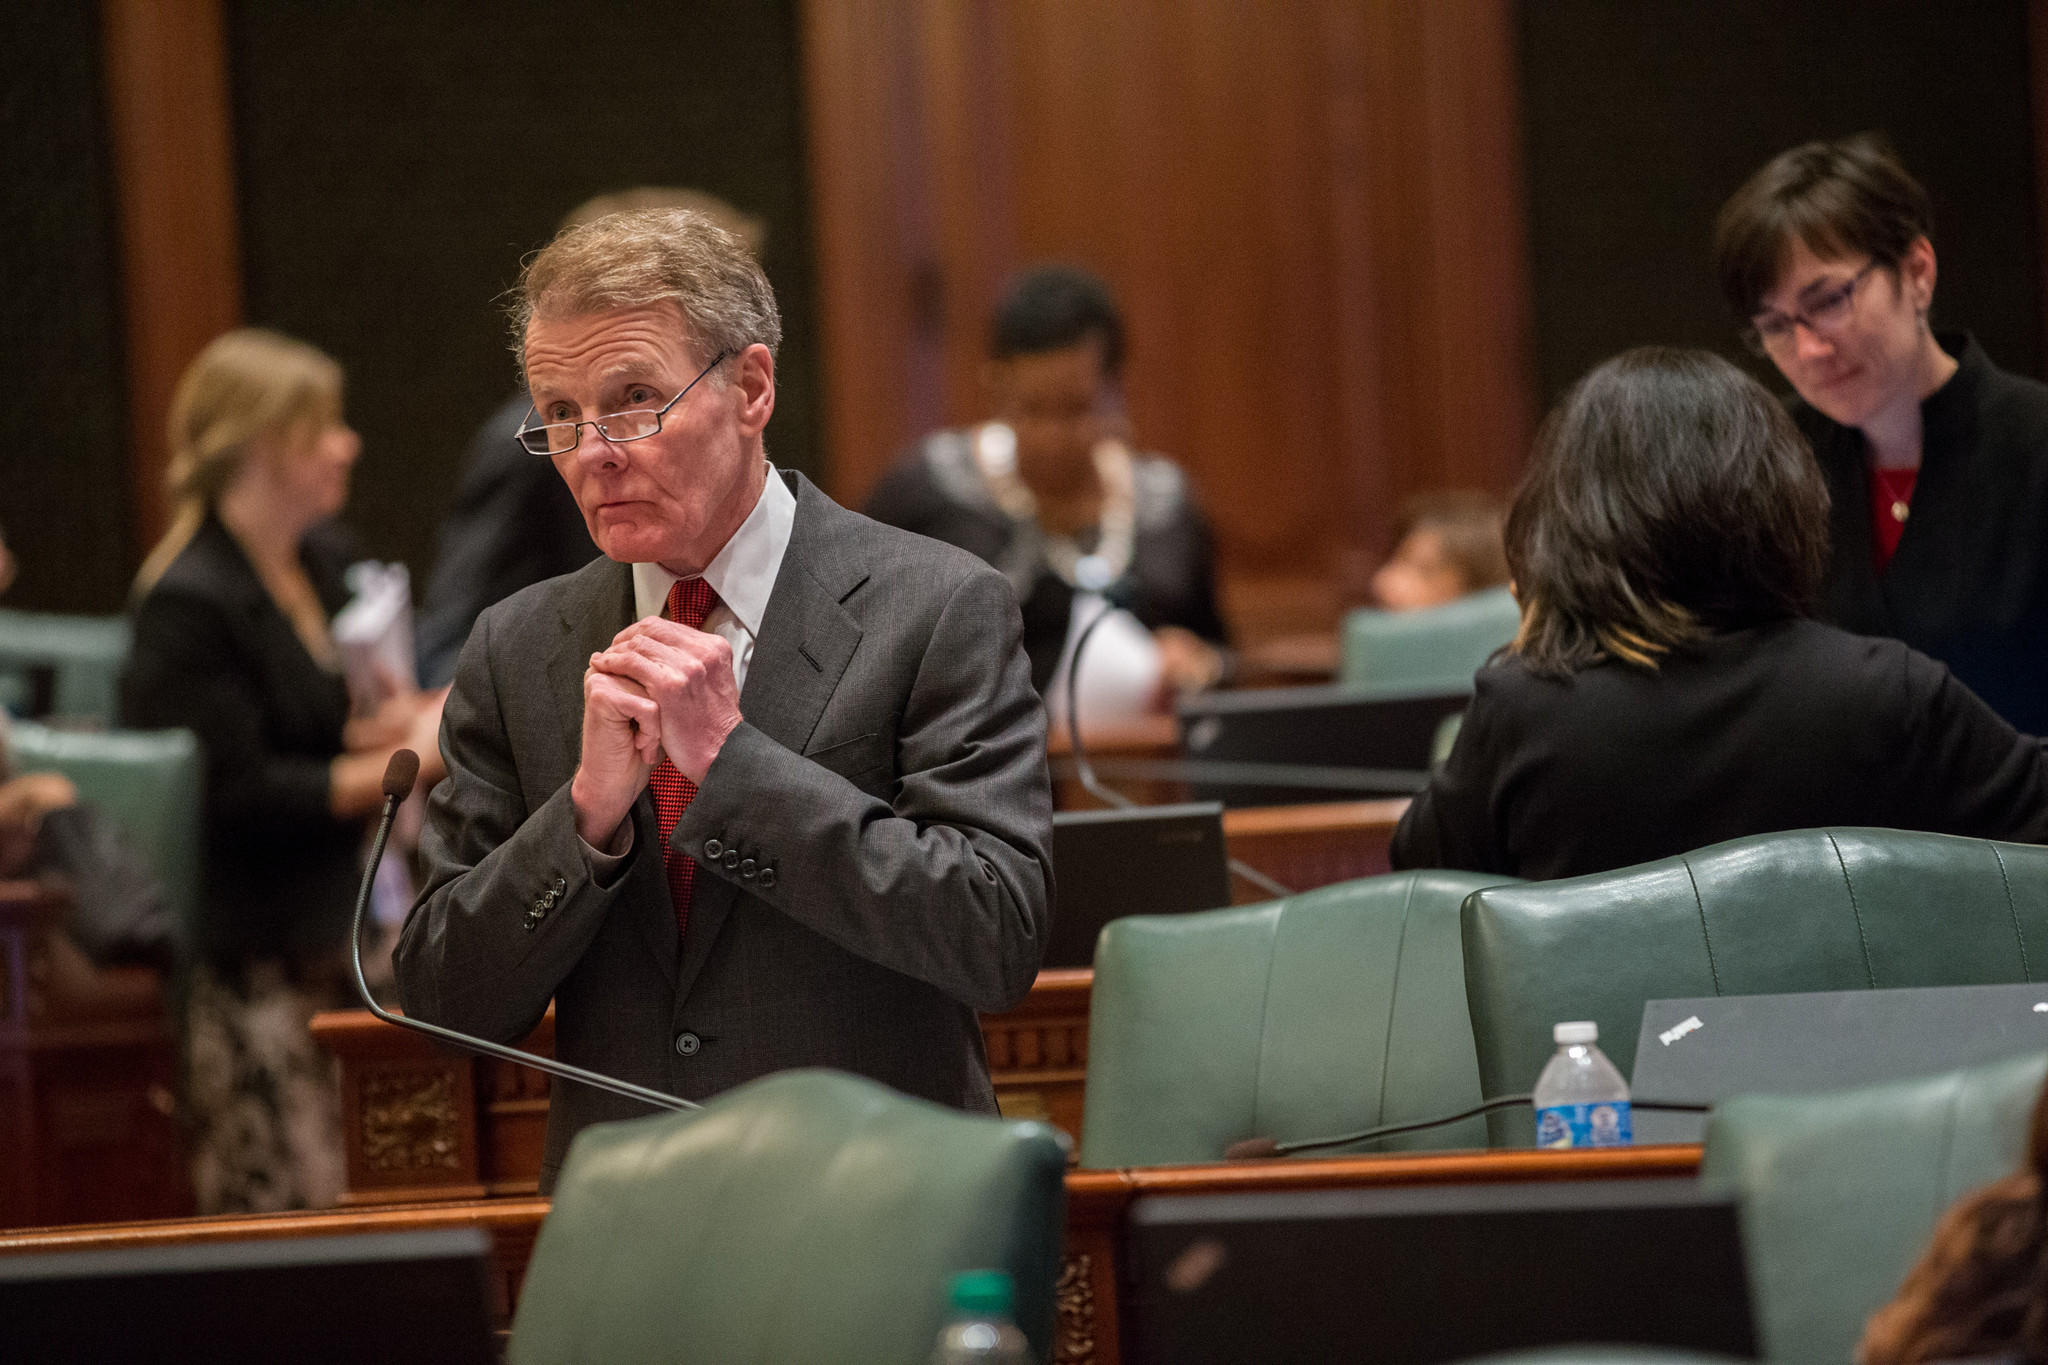 House Speaker Michael Madigan, D-Chicago in Springfield on Tuesday, December 3, 2013.